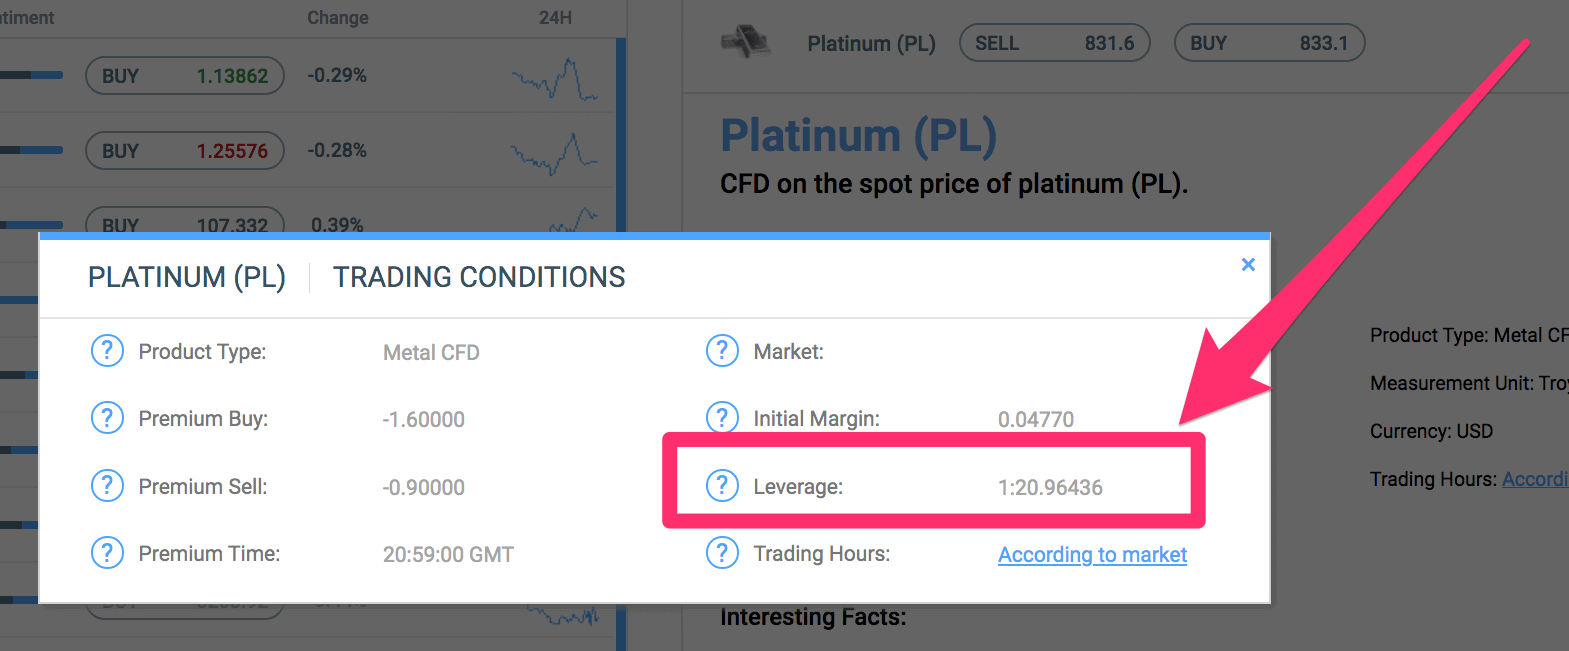 Leverage for platinum on Fortrade